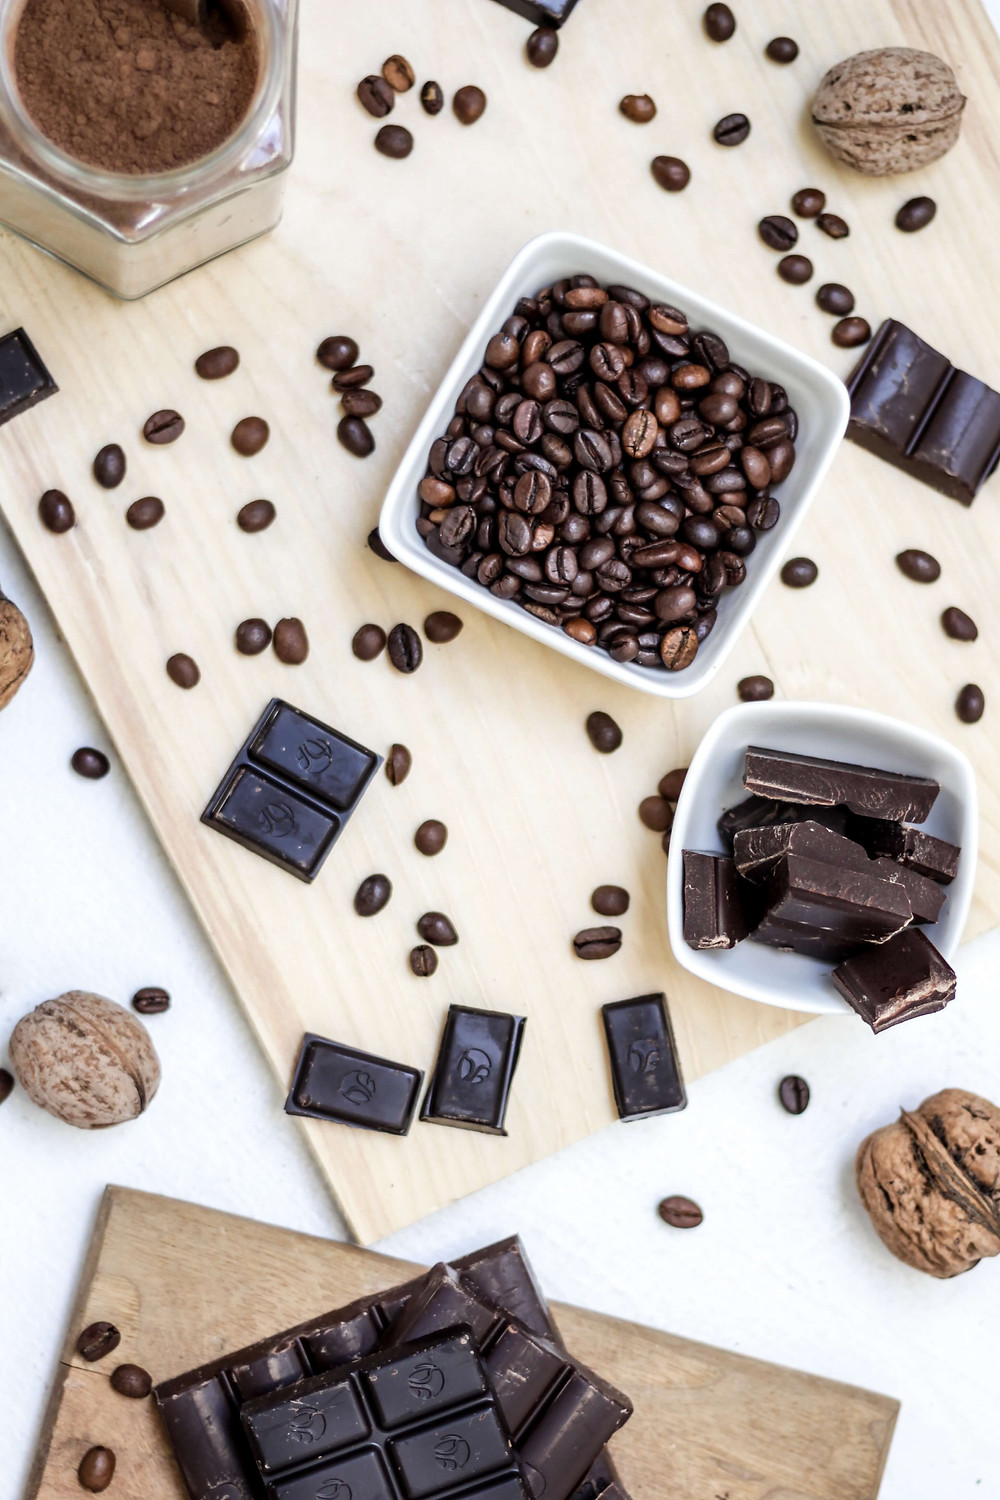 Fairtrade Coffee Beans and Chocolate